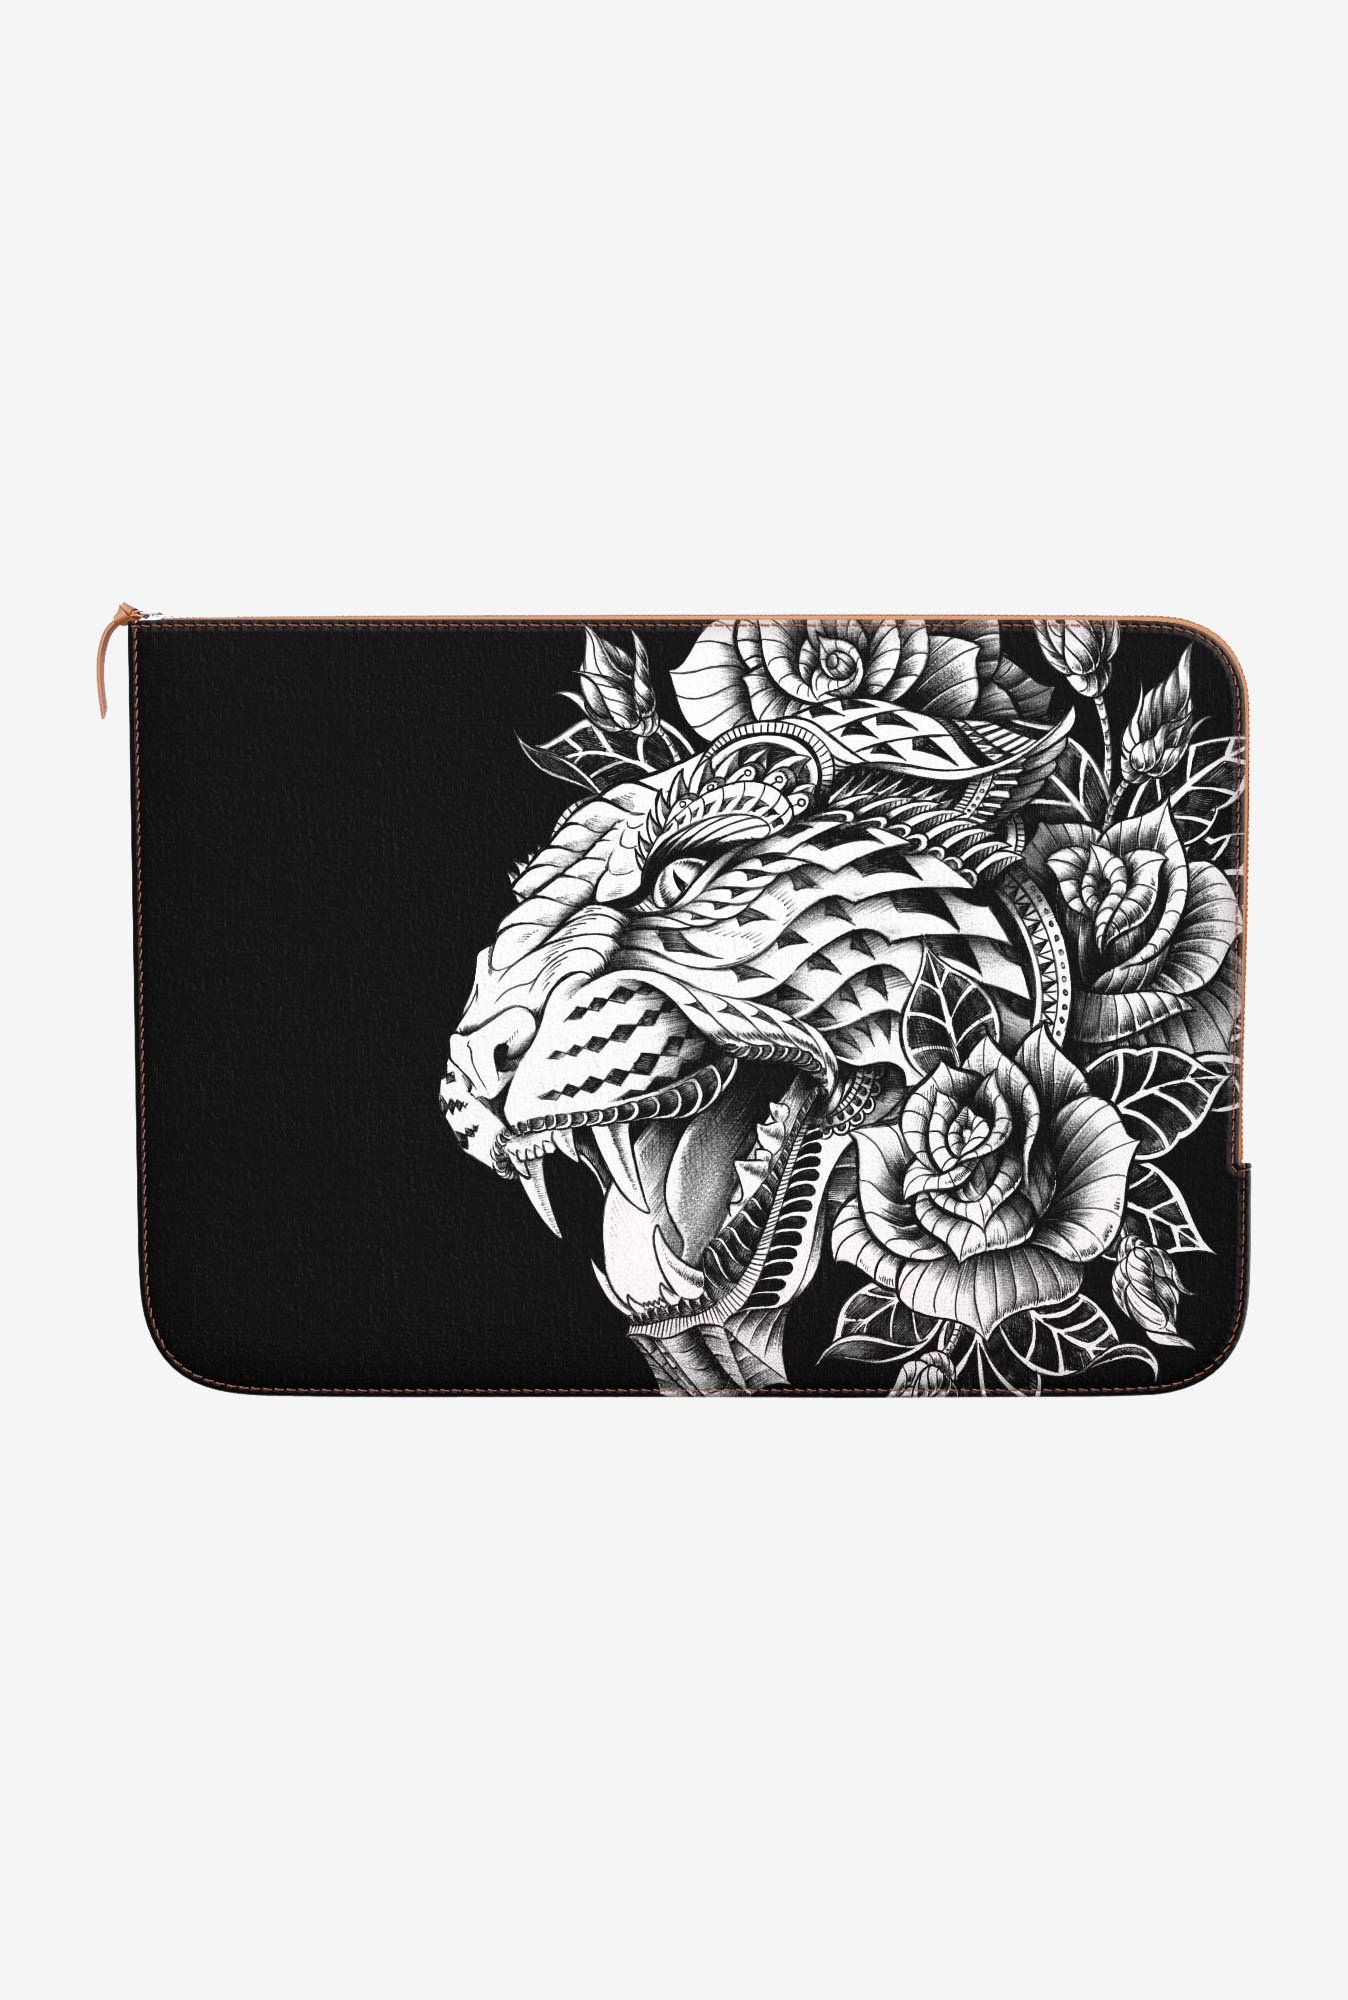 DailyObjects Ornate Leopard MacBook 12 Zippered Sleeve